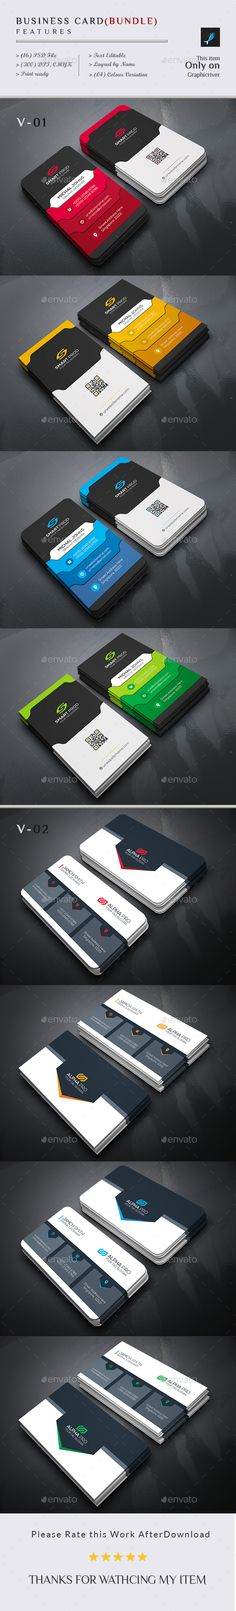 Card Bundle (2 In 1) - #Business #Cards Print Templates Download here:  https://graphicriver.net/item/card-bundle-2-in-1/19520107?ref=alena994